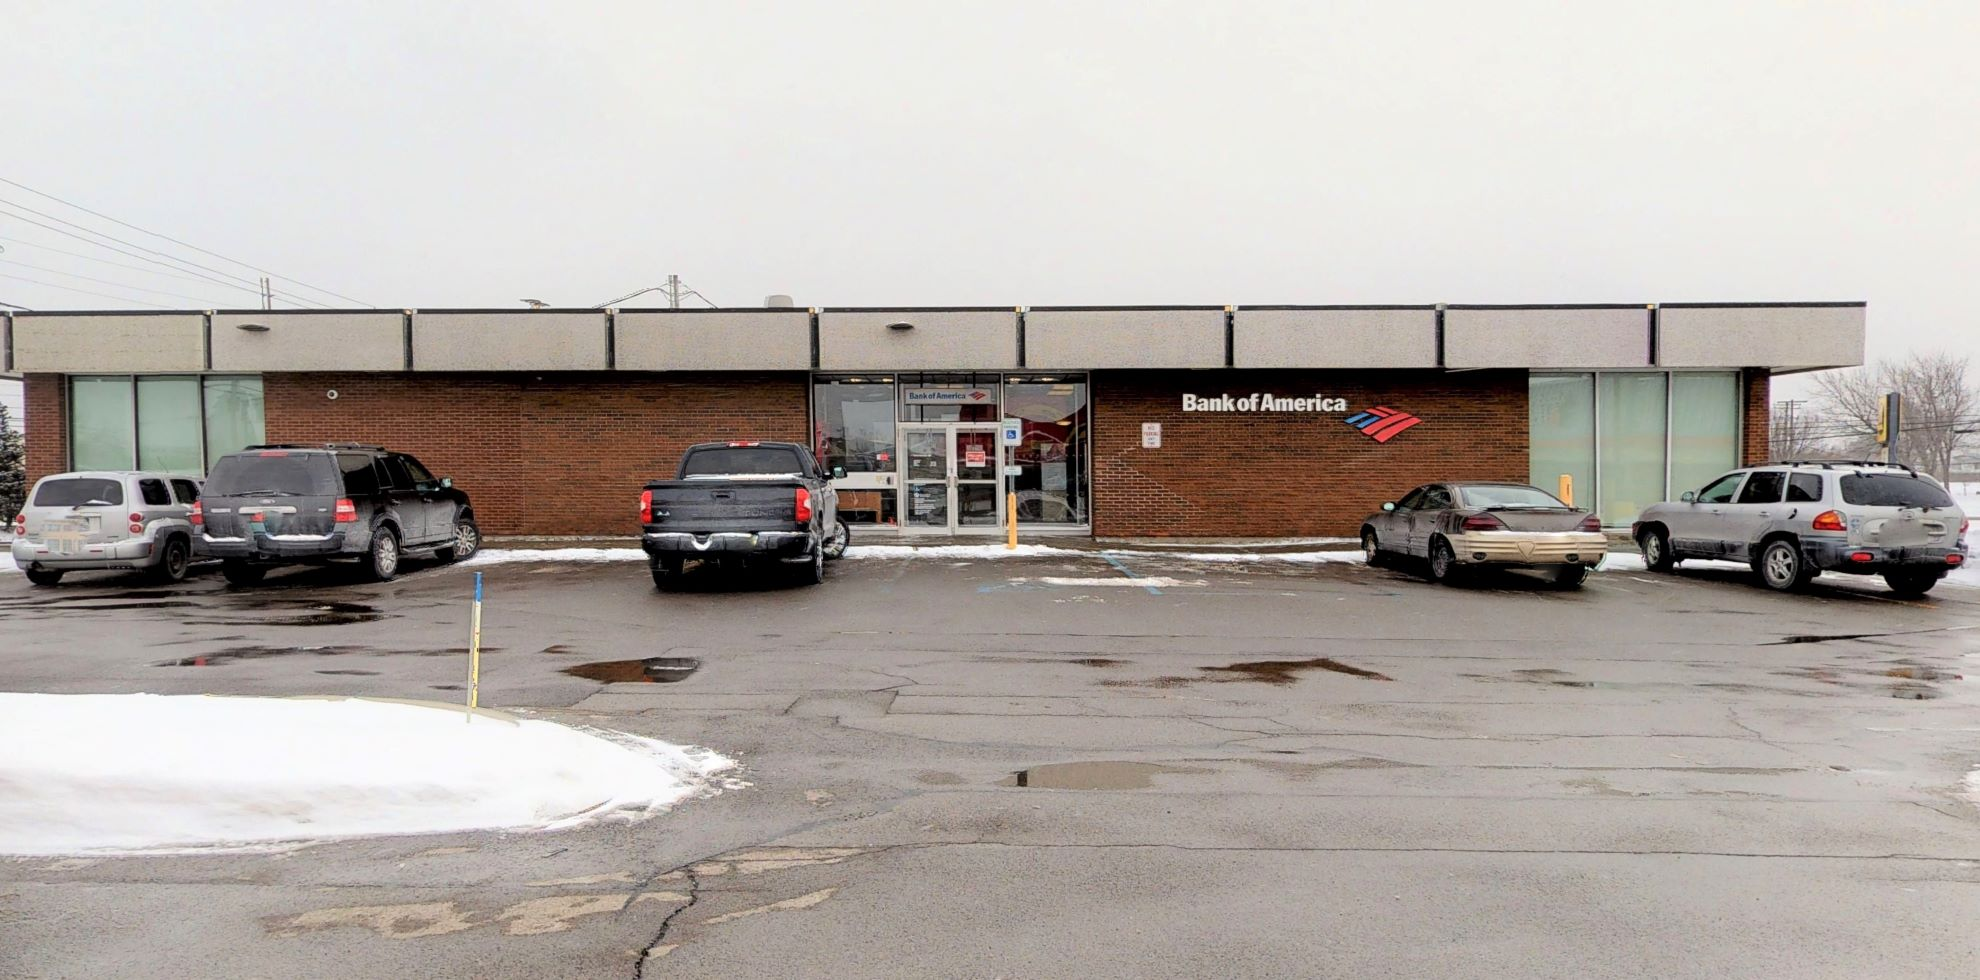 Bank of America financial center with drive-thru ATM   600 Dick Rd, Depew, NY 14043